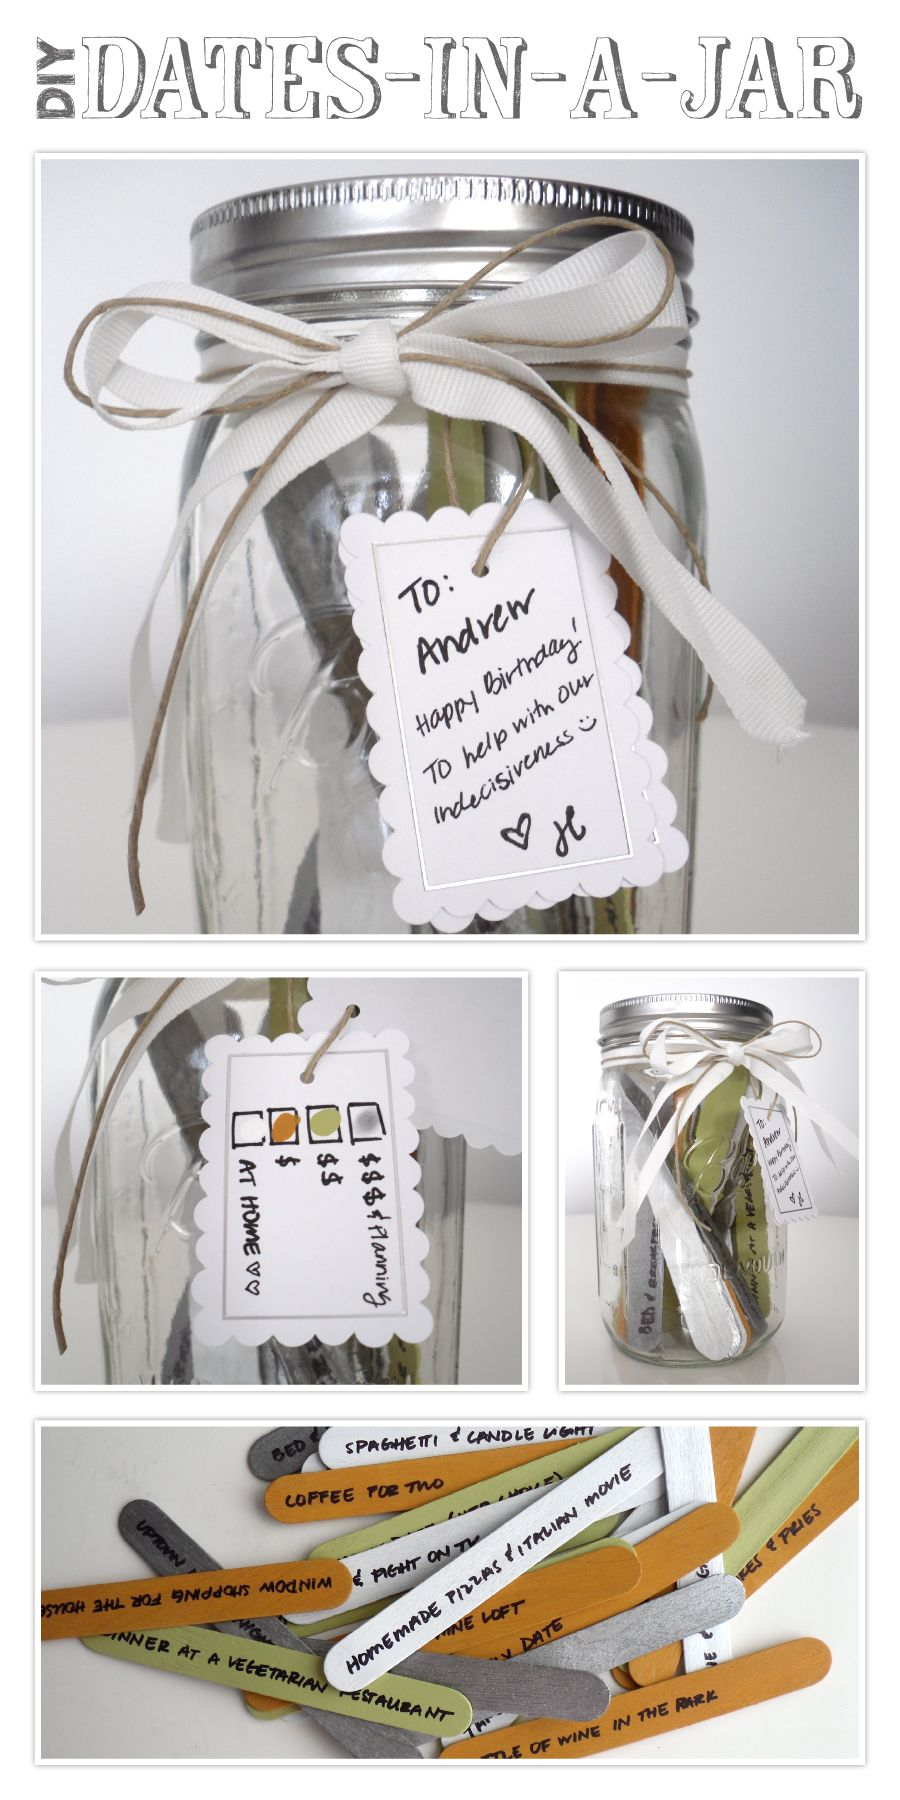 Dates in a jar birthday project for my boyfriend done cool